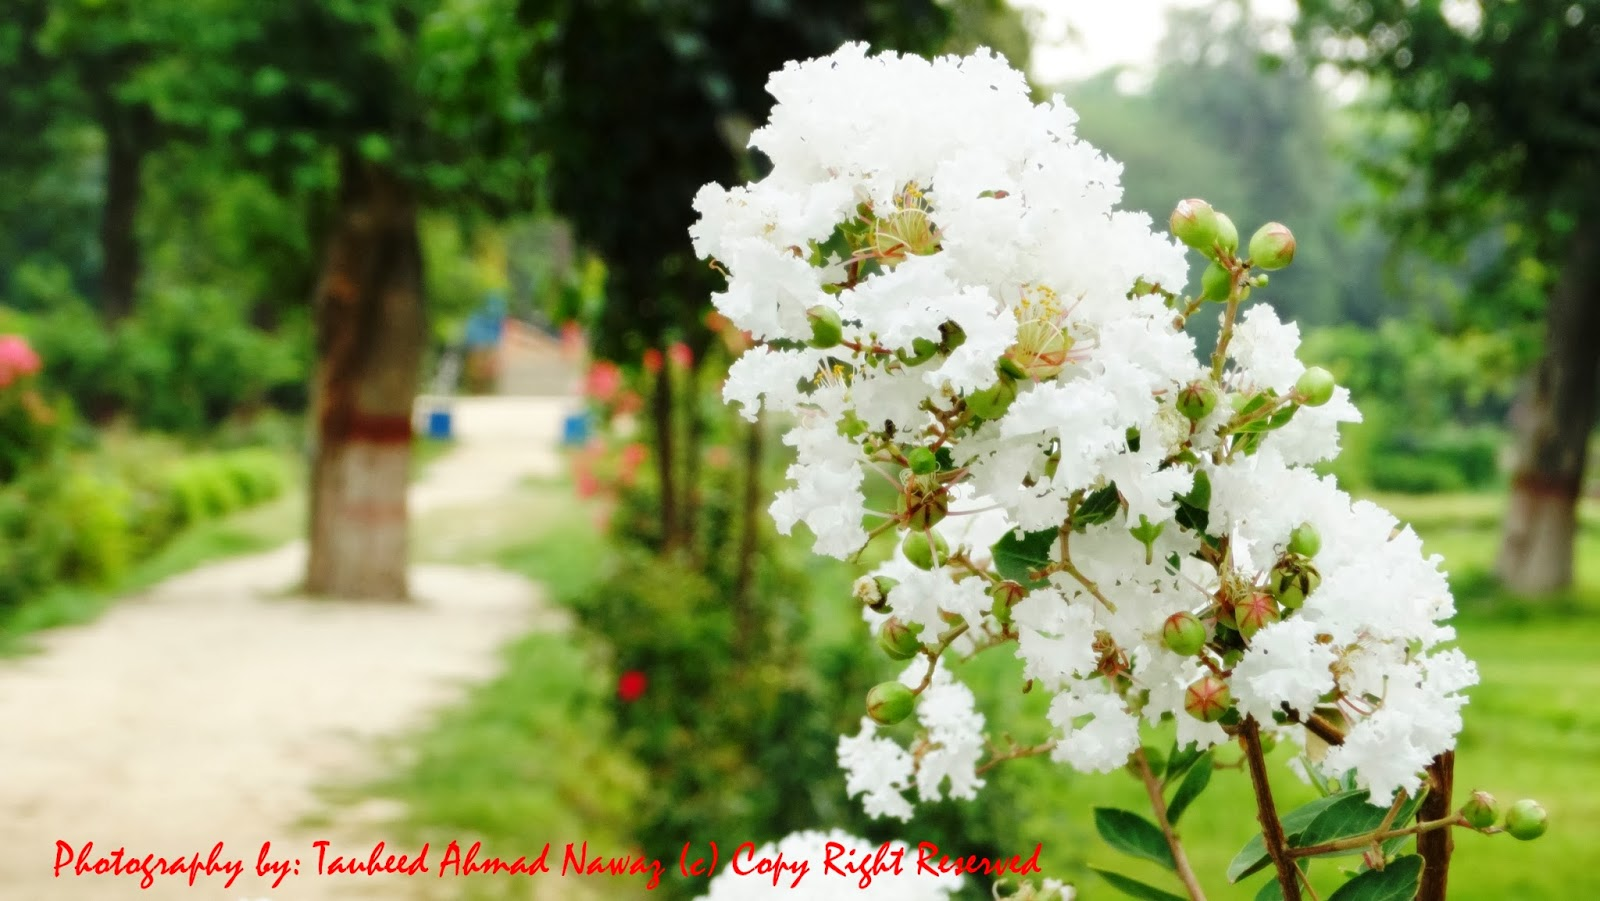 Tauheed Ahmed Nawaz Photography Fresh White Flowers Are Most